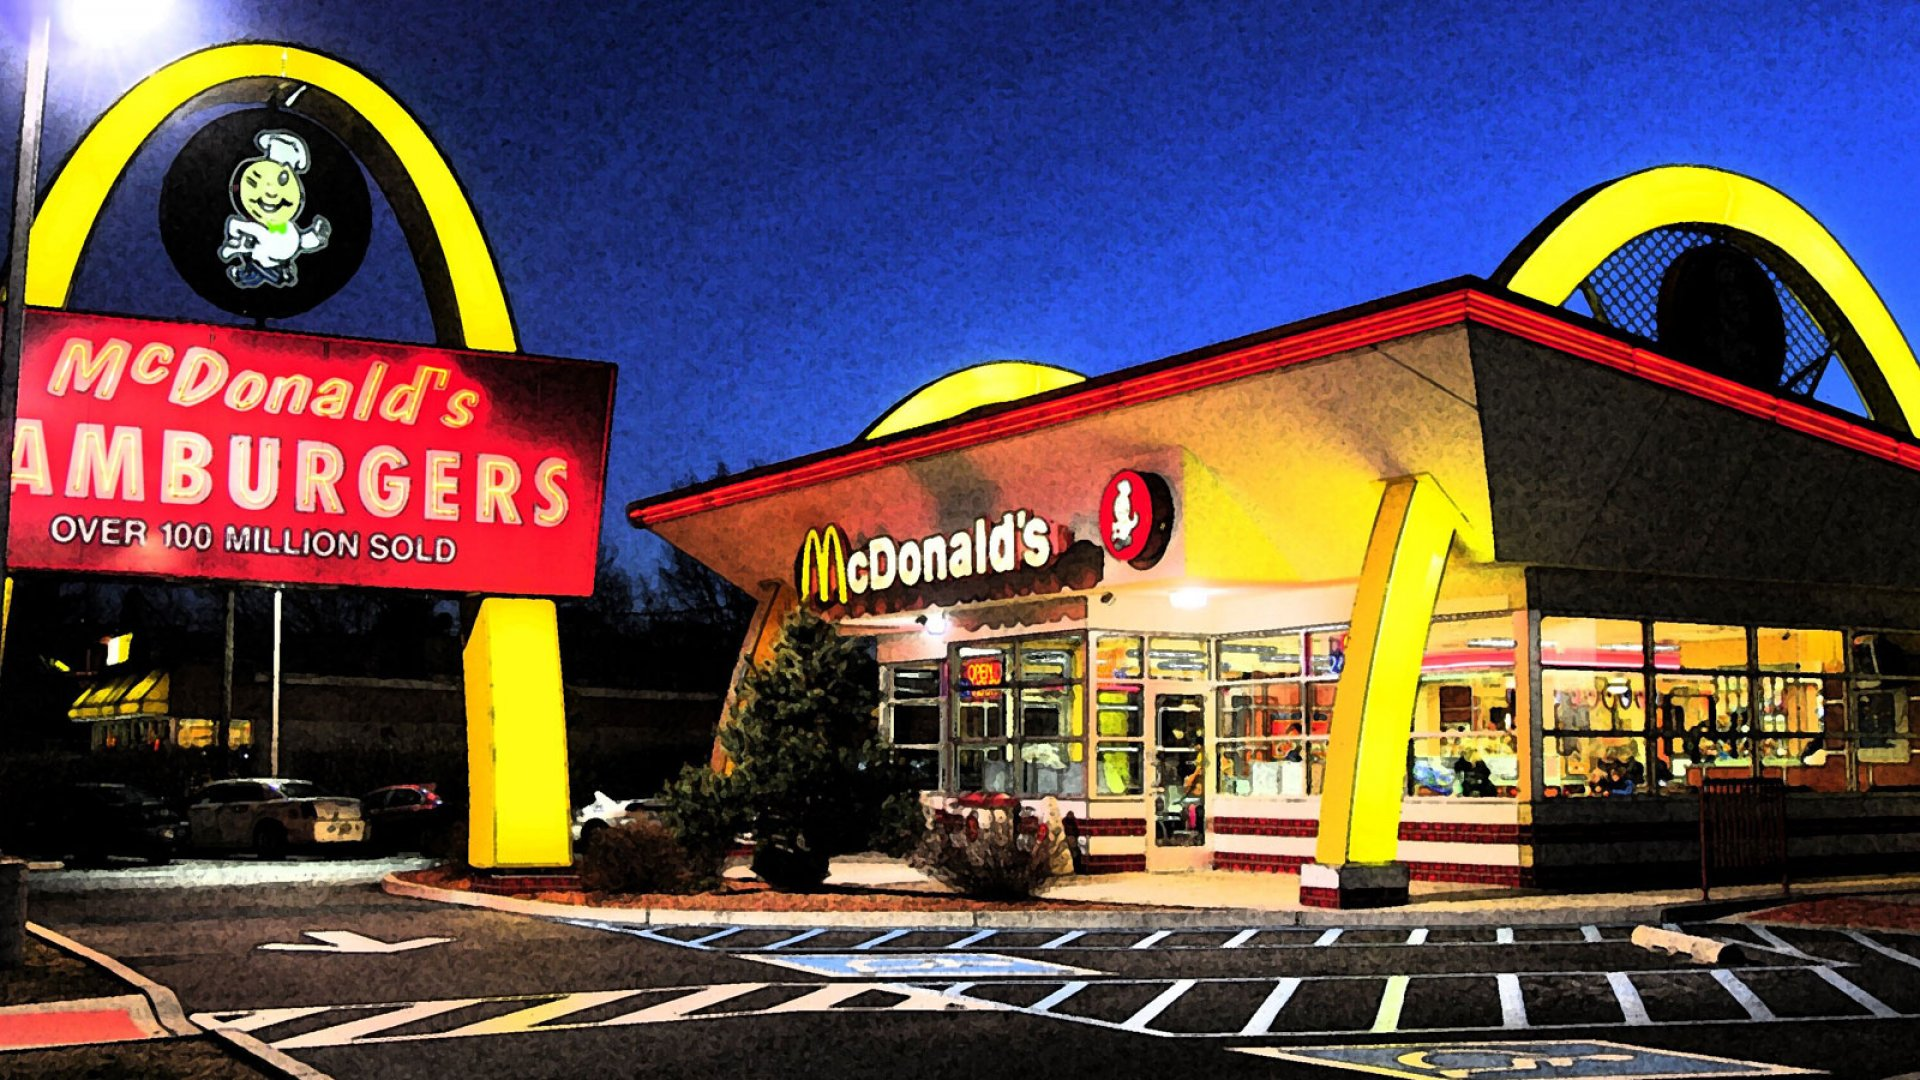 McDonald's Workers Advised to Treat Burns With Condiments